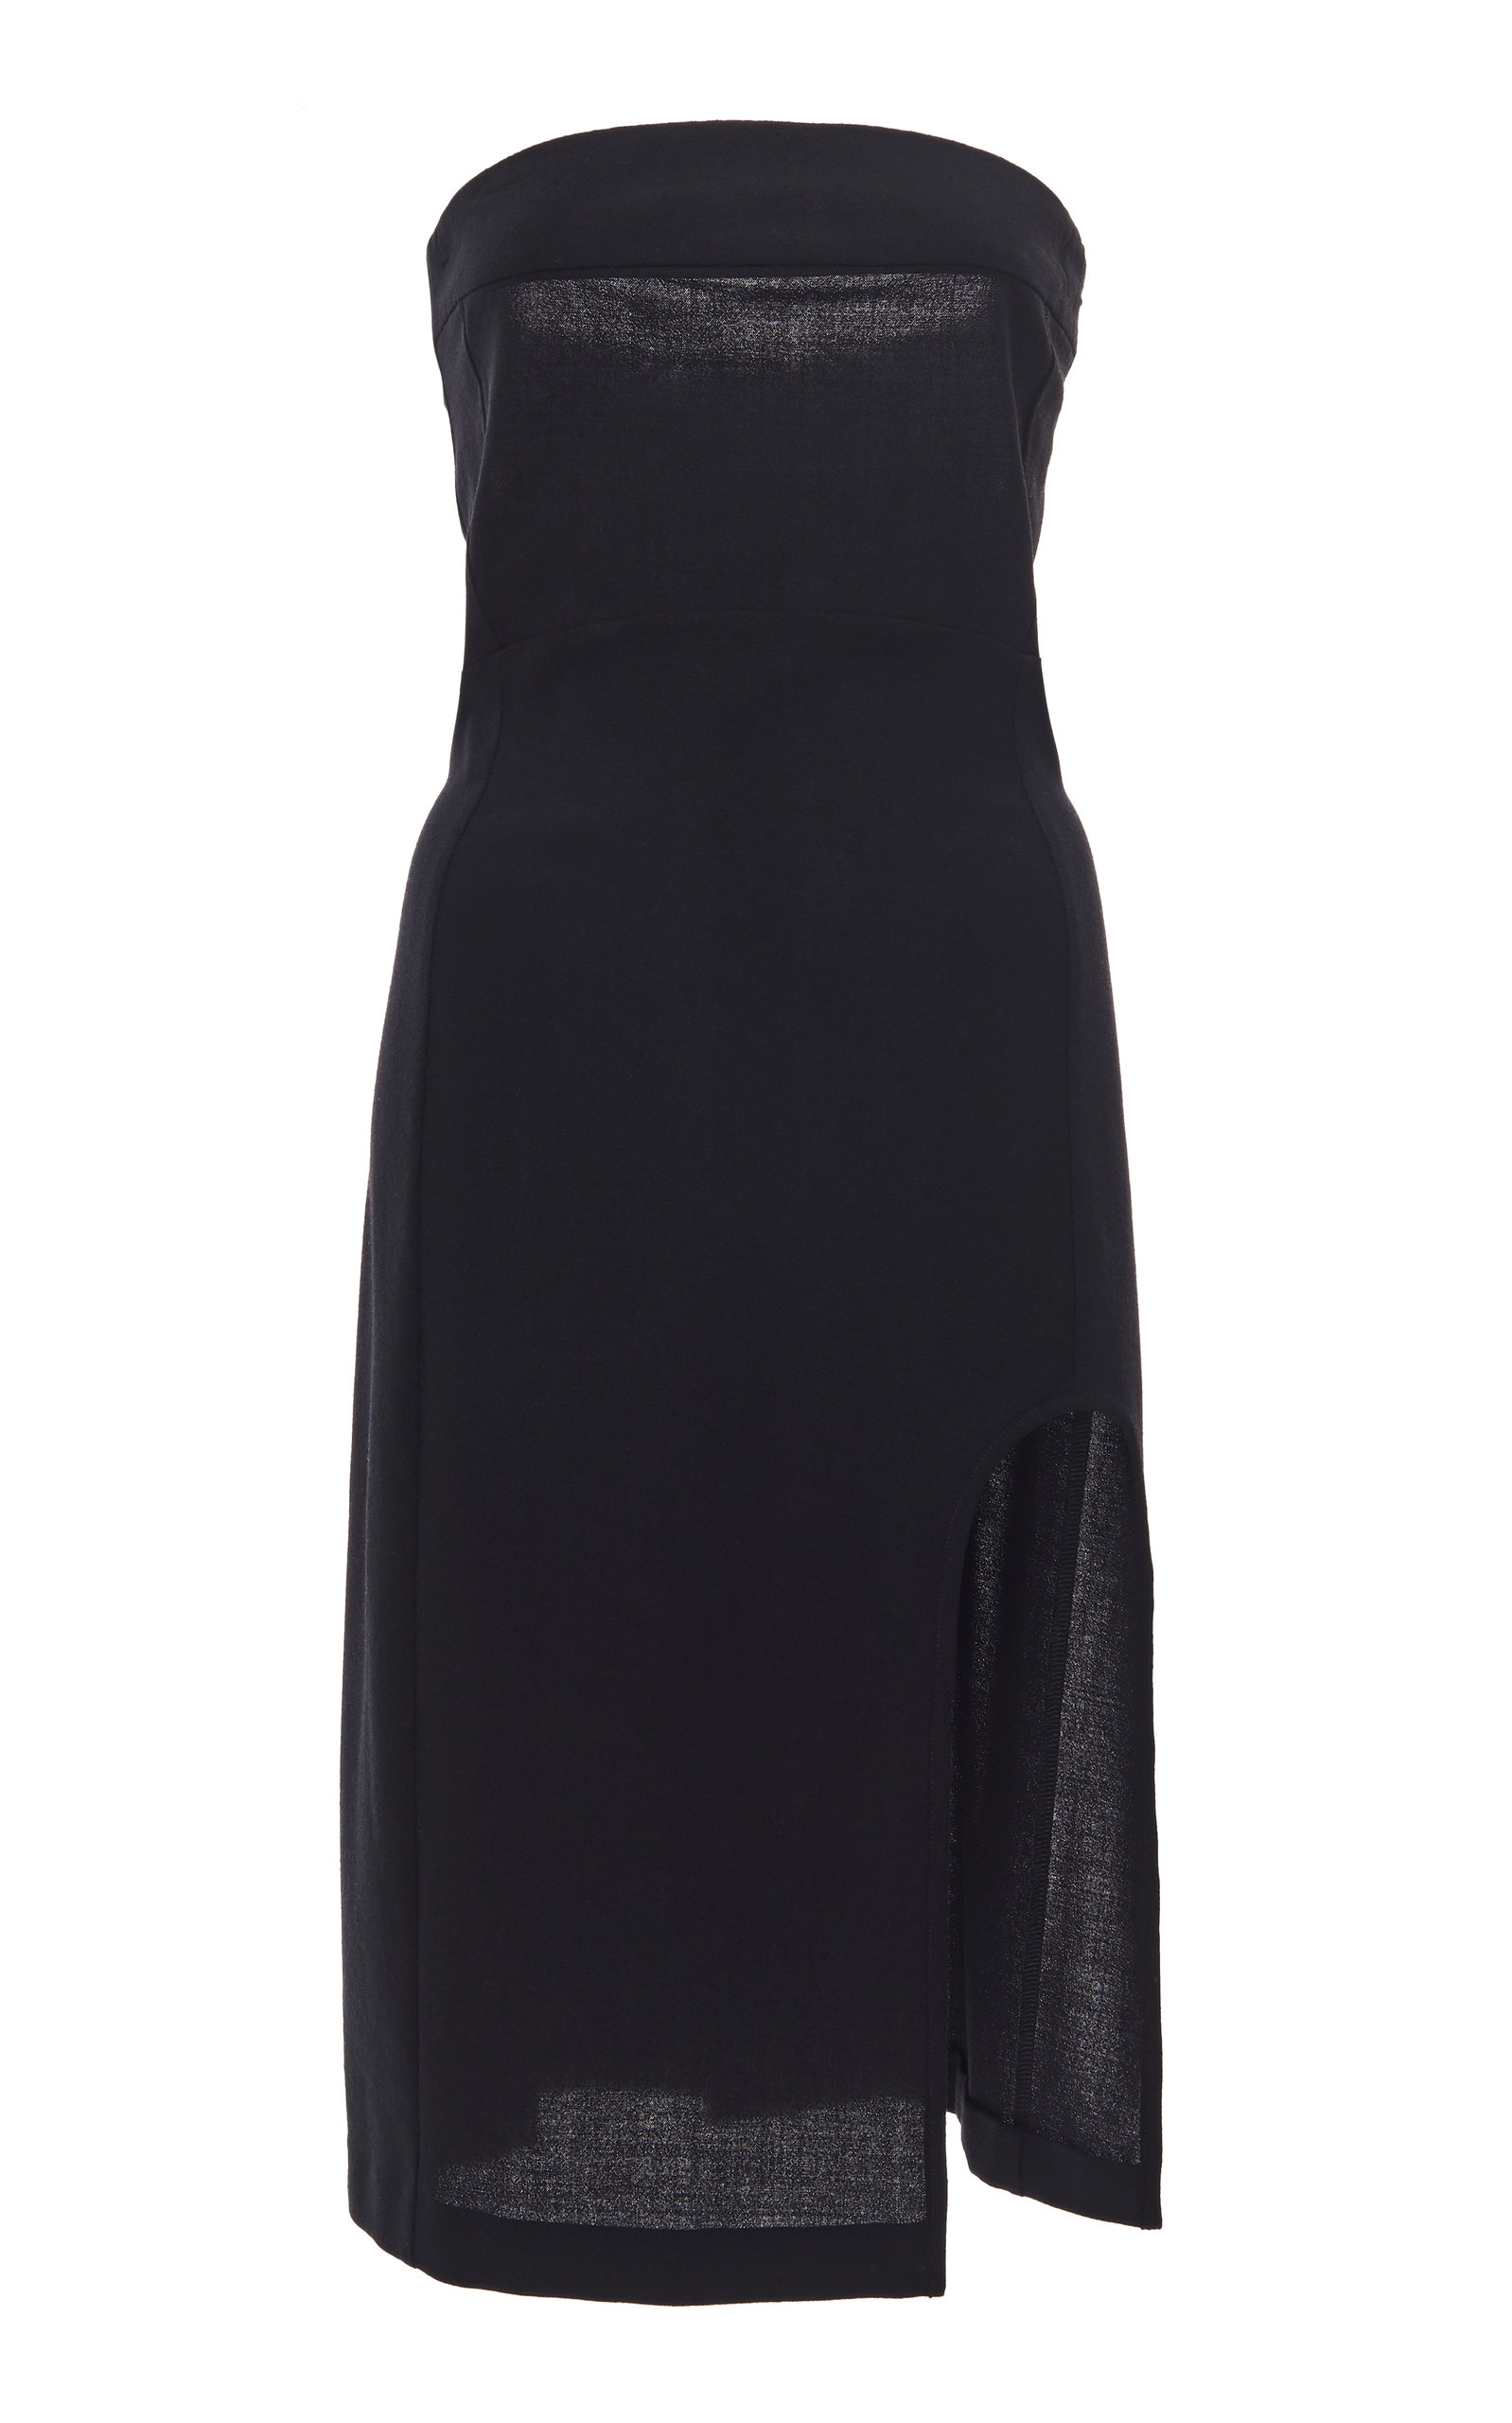 Buy Ann Demeulemeester Cutout Knit Strapless Midi Dress online, shop Ann Demeulemeester at the best price